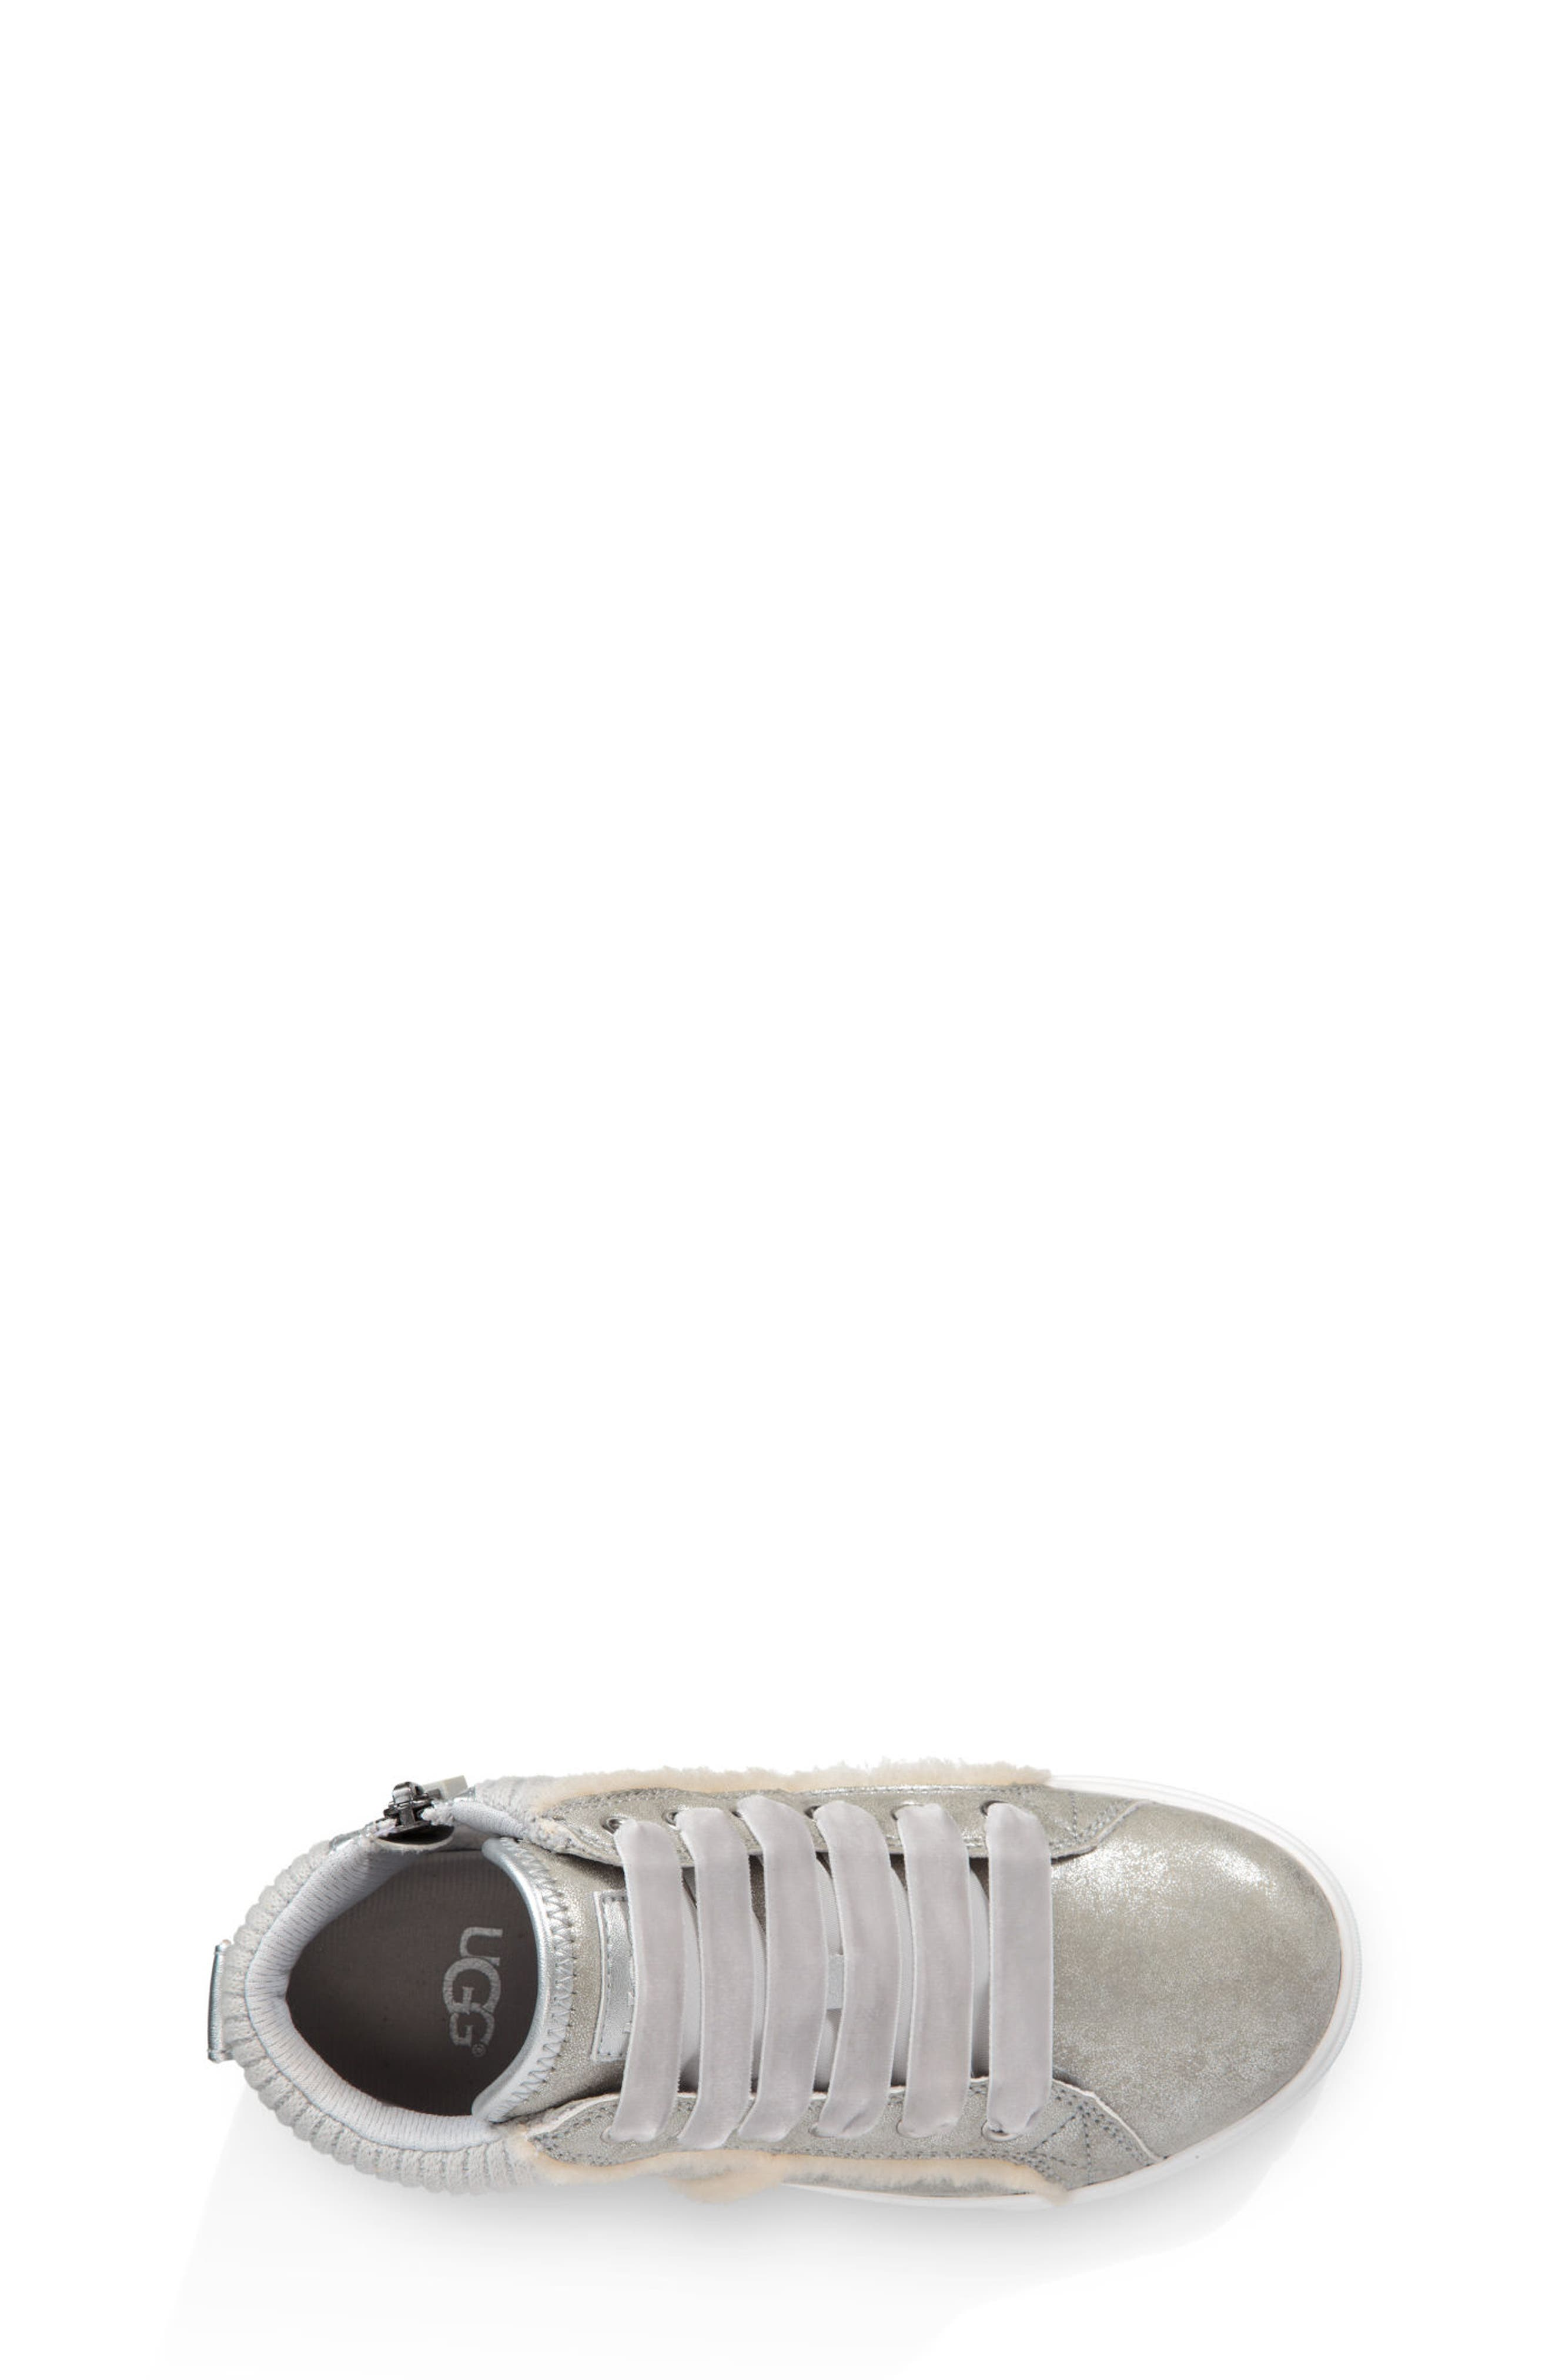 Addie High Top Sneaker,                             Alternate thumbnail 3, color,                             SILVER